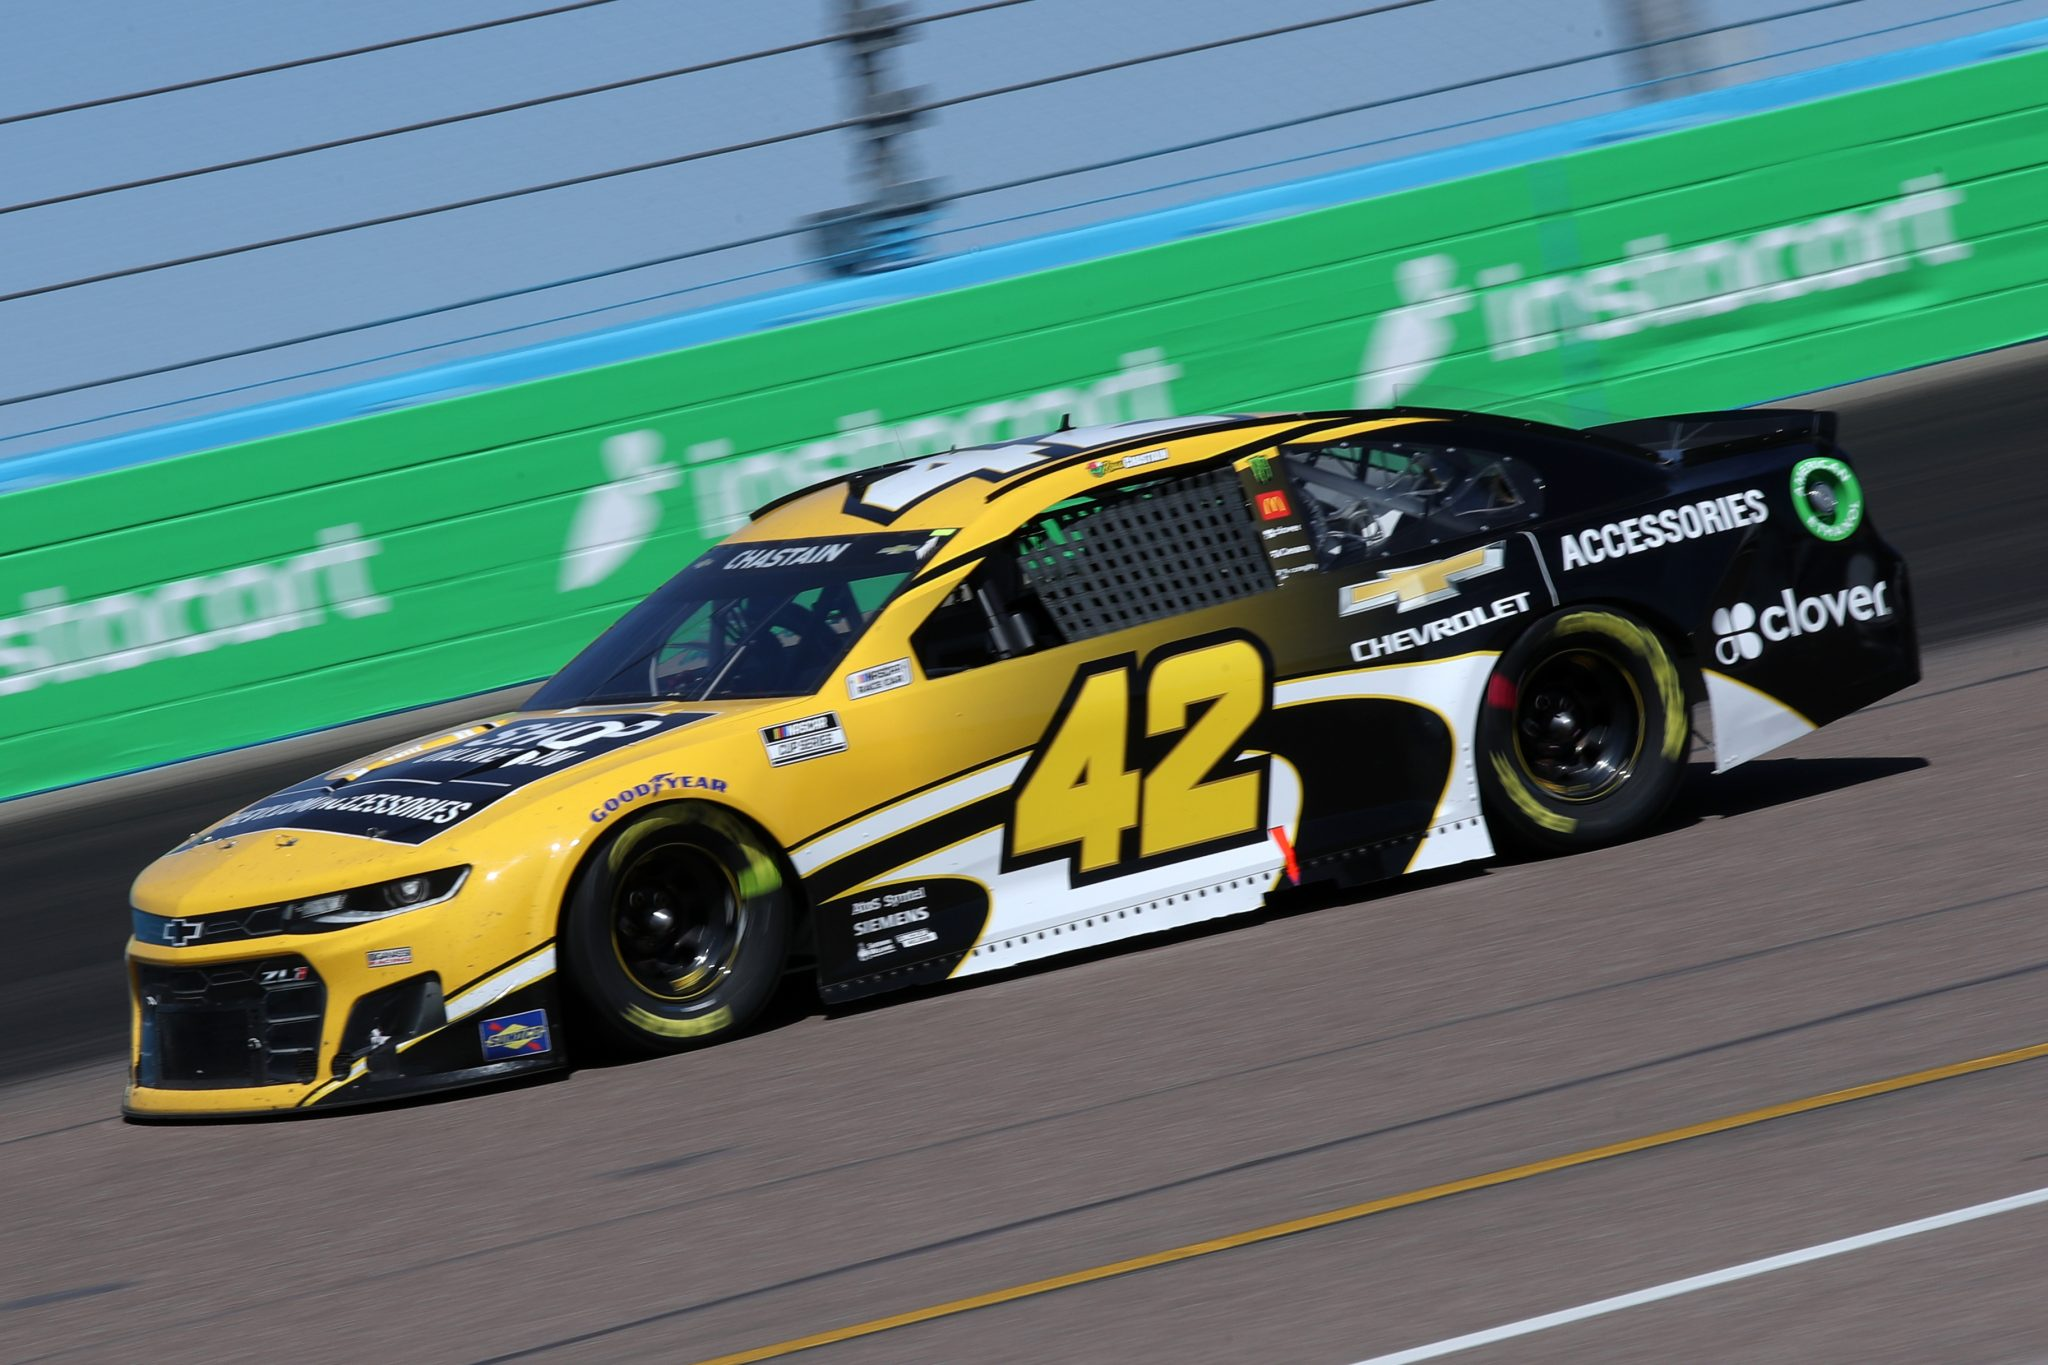 AVONDALE, ARIZONA - MARCH 14: Ross Chastain, driver of the #42 Chevrolet Accessories Chevrolet, drives during the NASCAR Cup Series Instacart 500 at Phoenix Raceway on March 14, 2021 in Avondale, Arizona. (Photo by Sean Gardner/Getty Images) | Getty Images